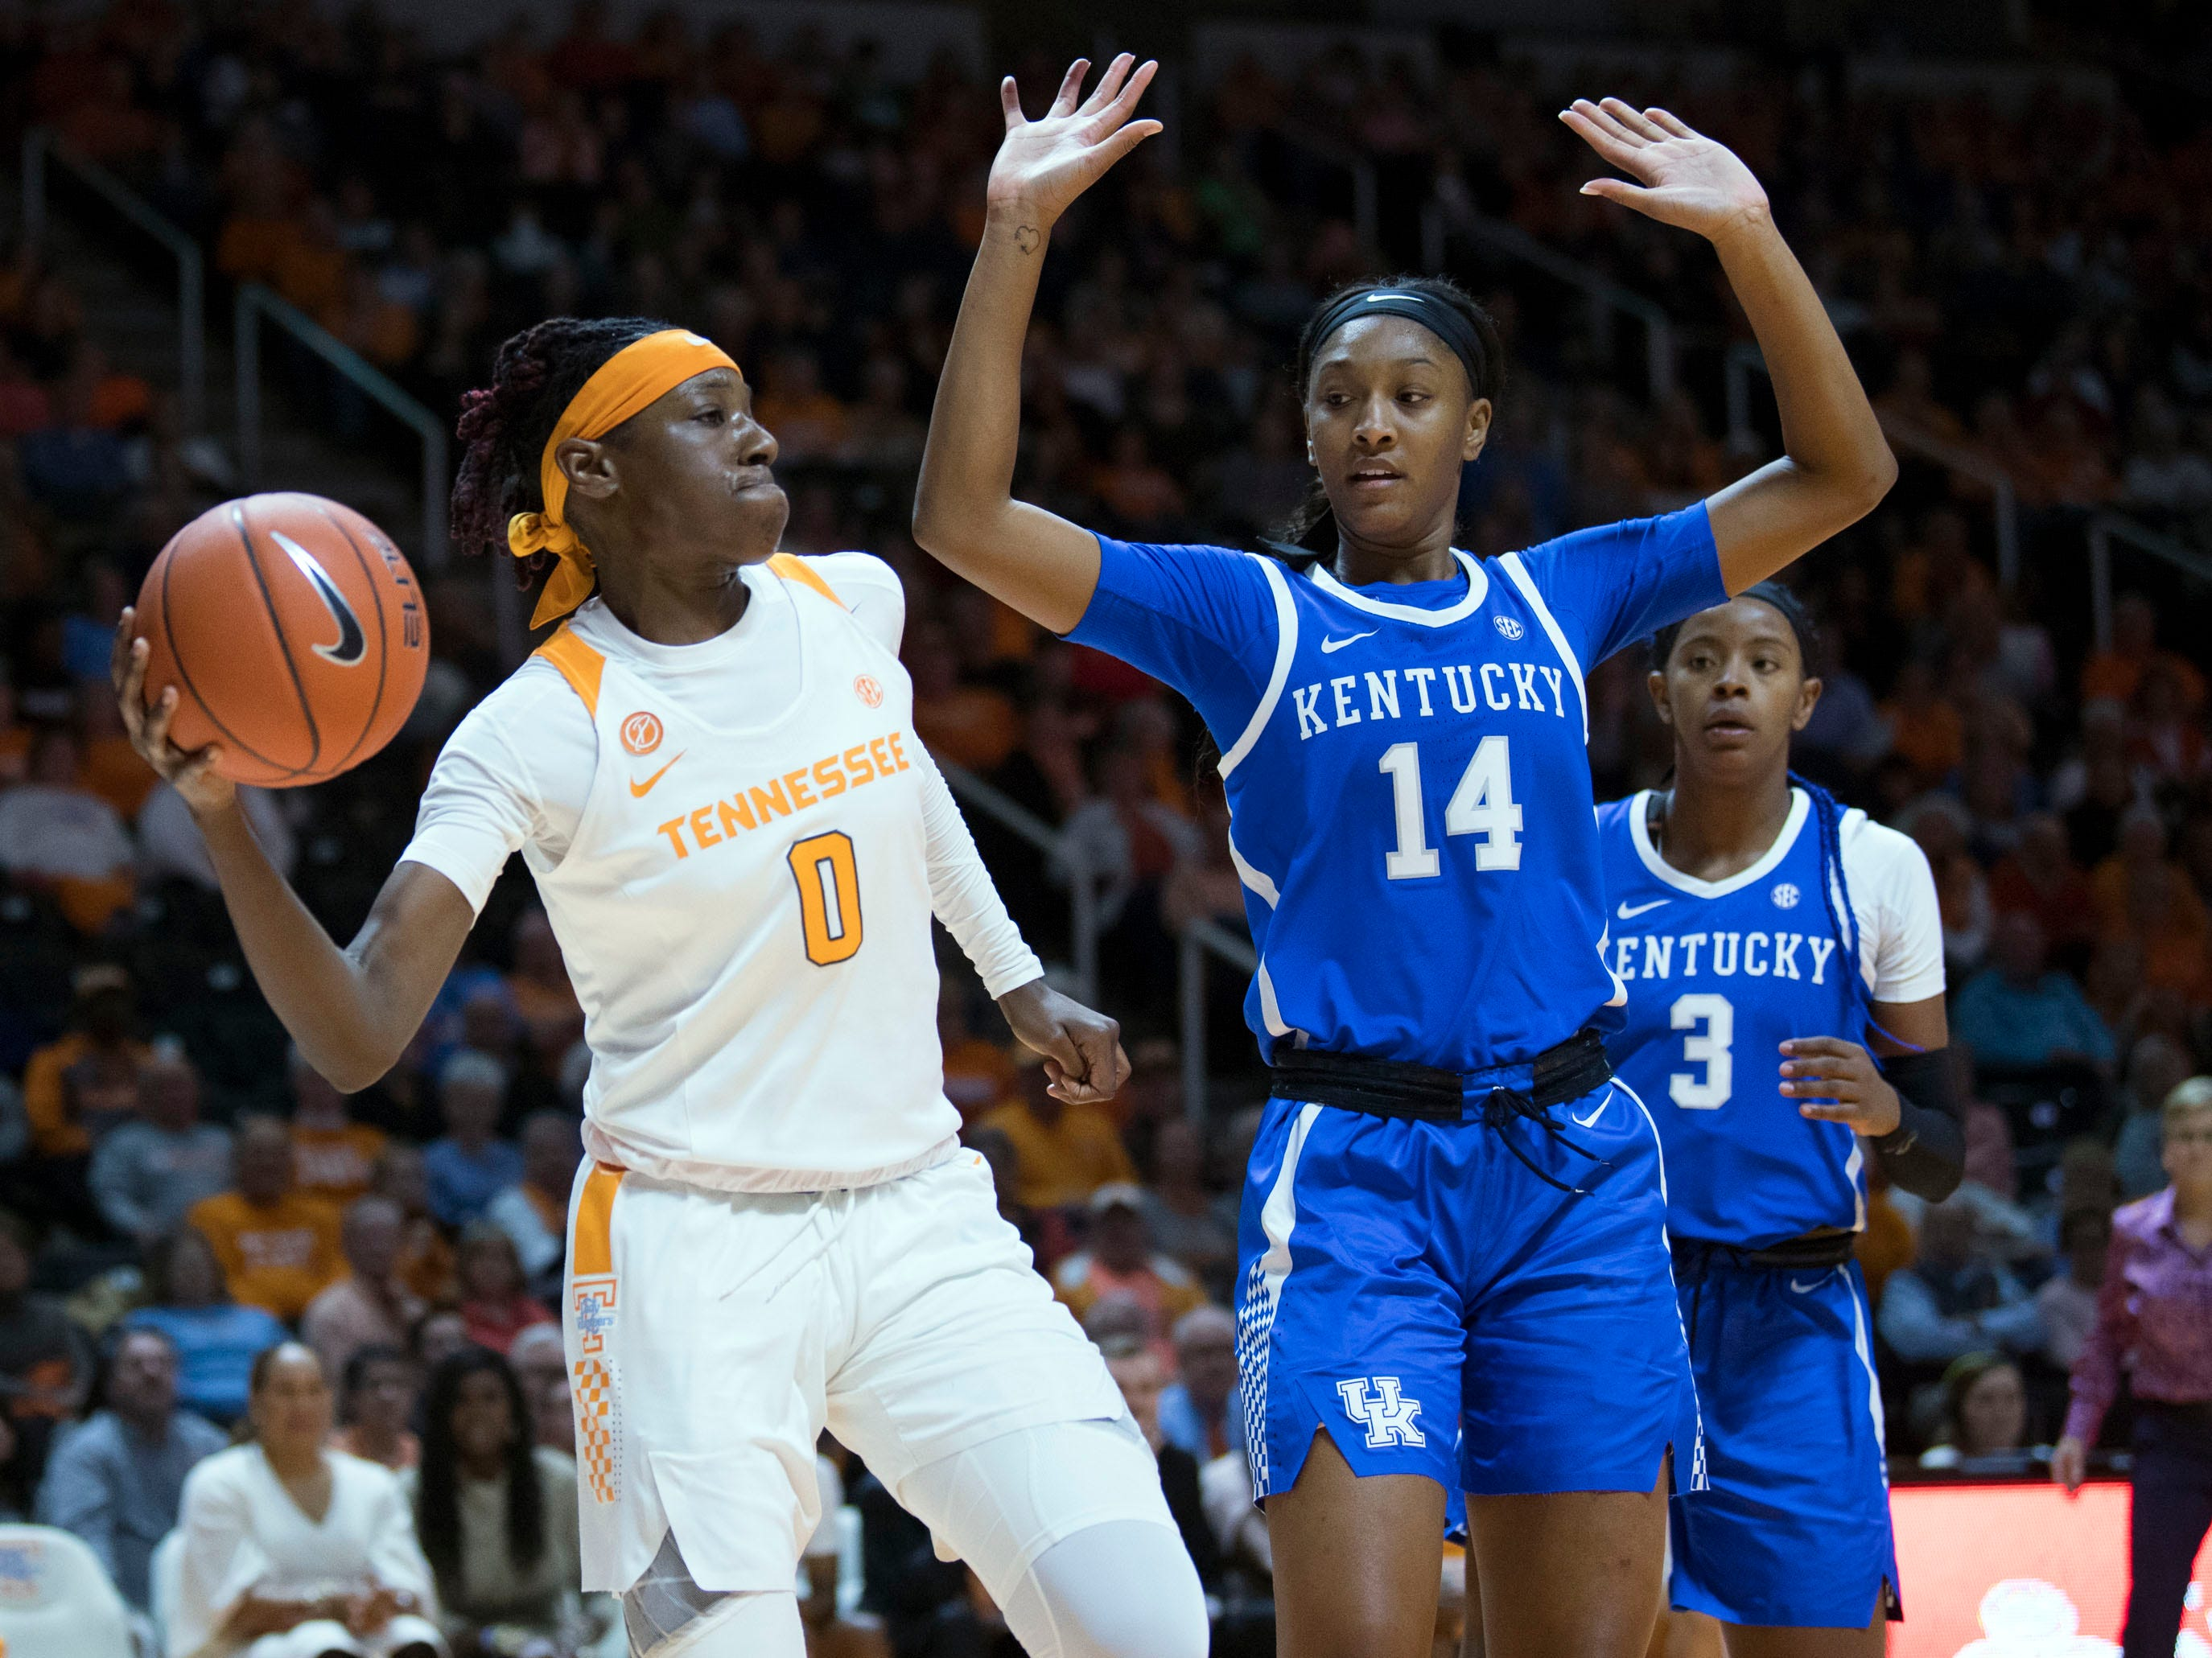 Tennessee's Rennia Davis (0) passes the ball while guarded by Kentucky's Tatyana Wyatt (14) on Thursday, January 10, 2019.